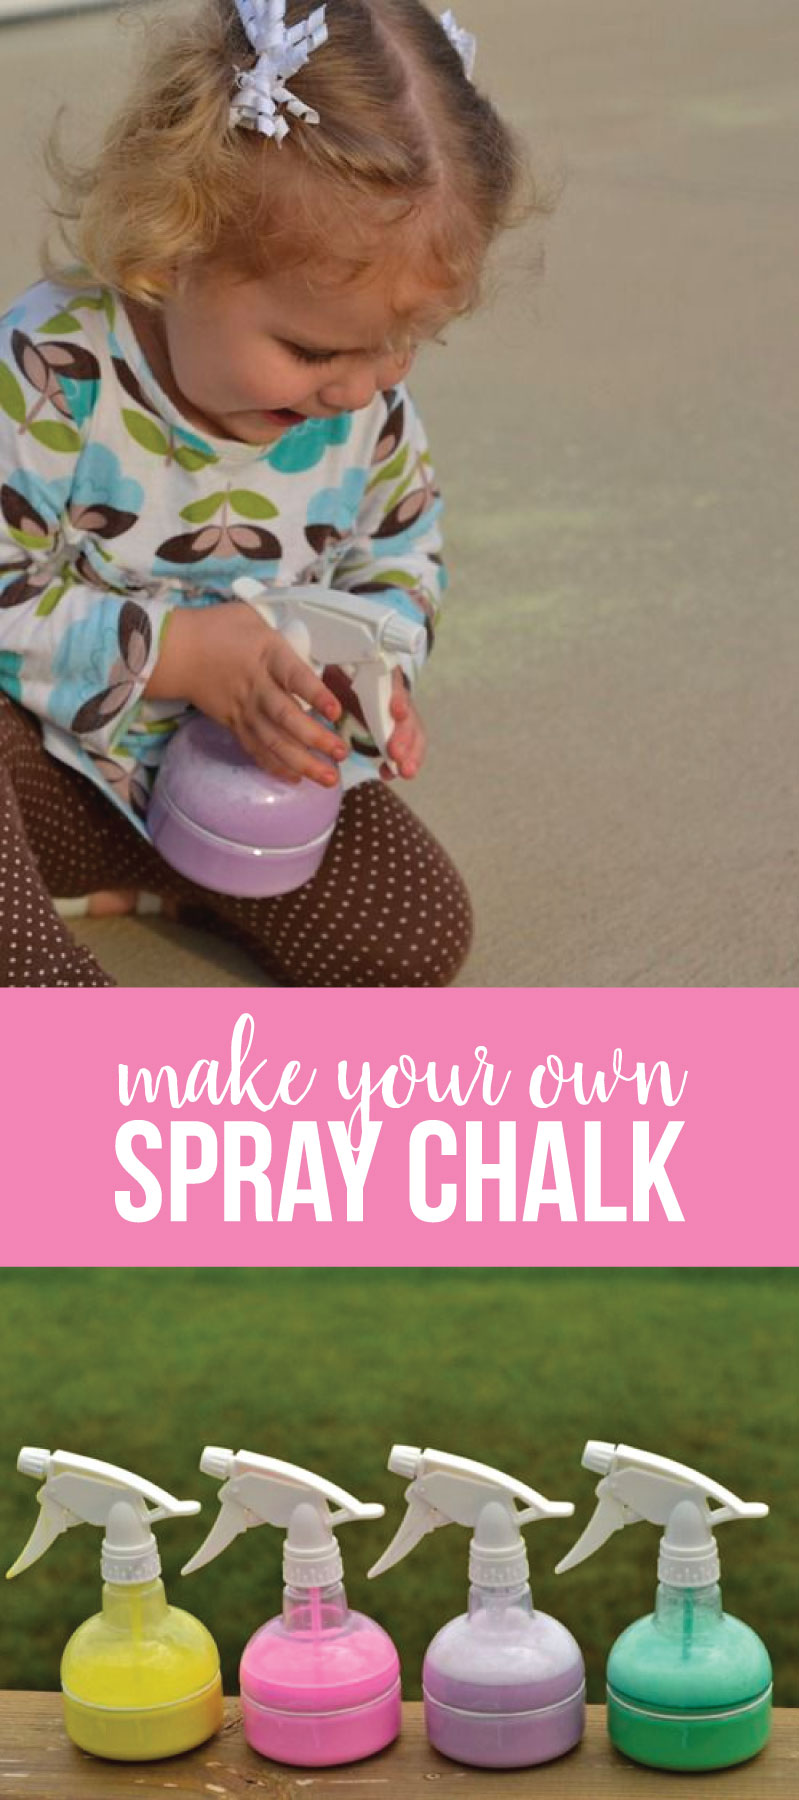 Spray Chalk